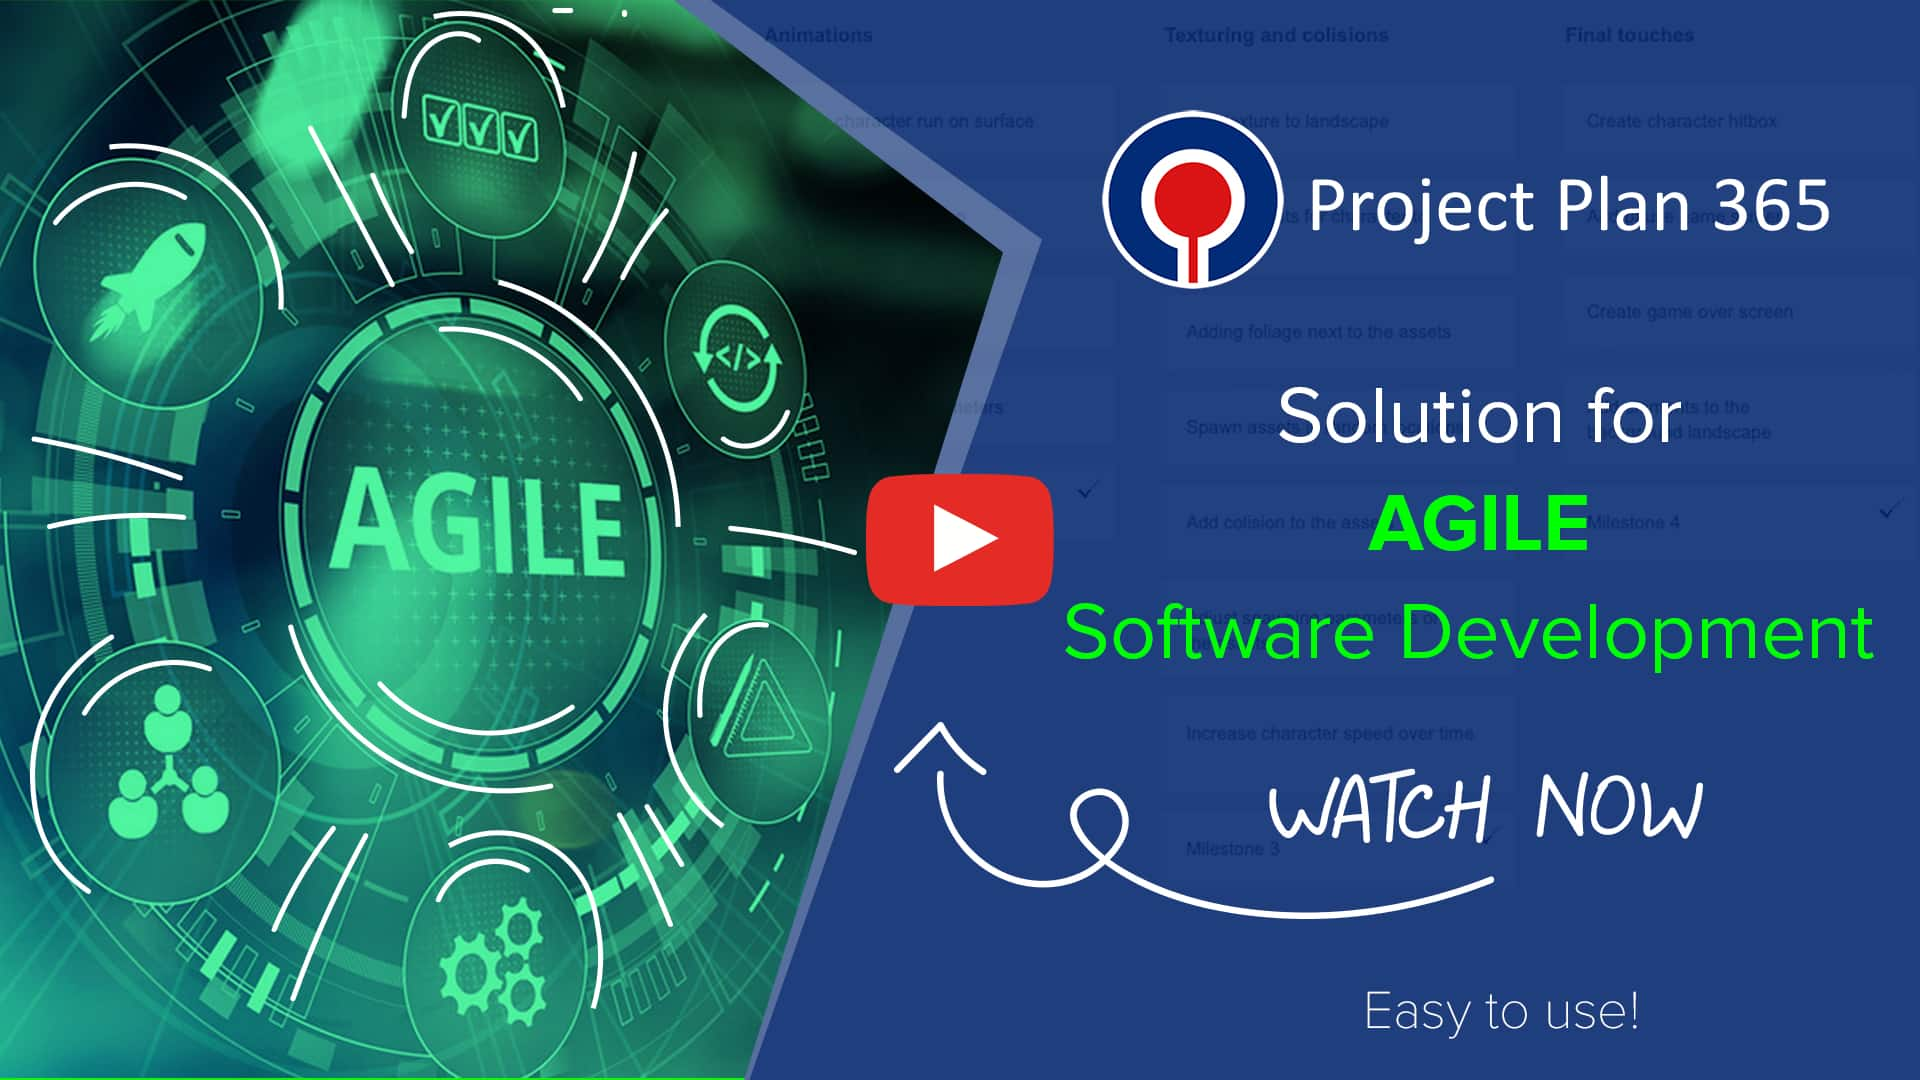 Solution for Agile Software Development